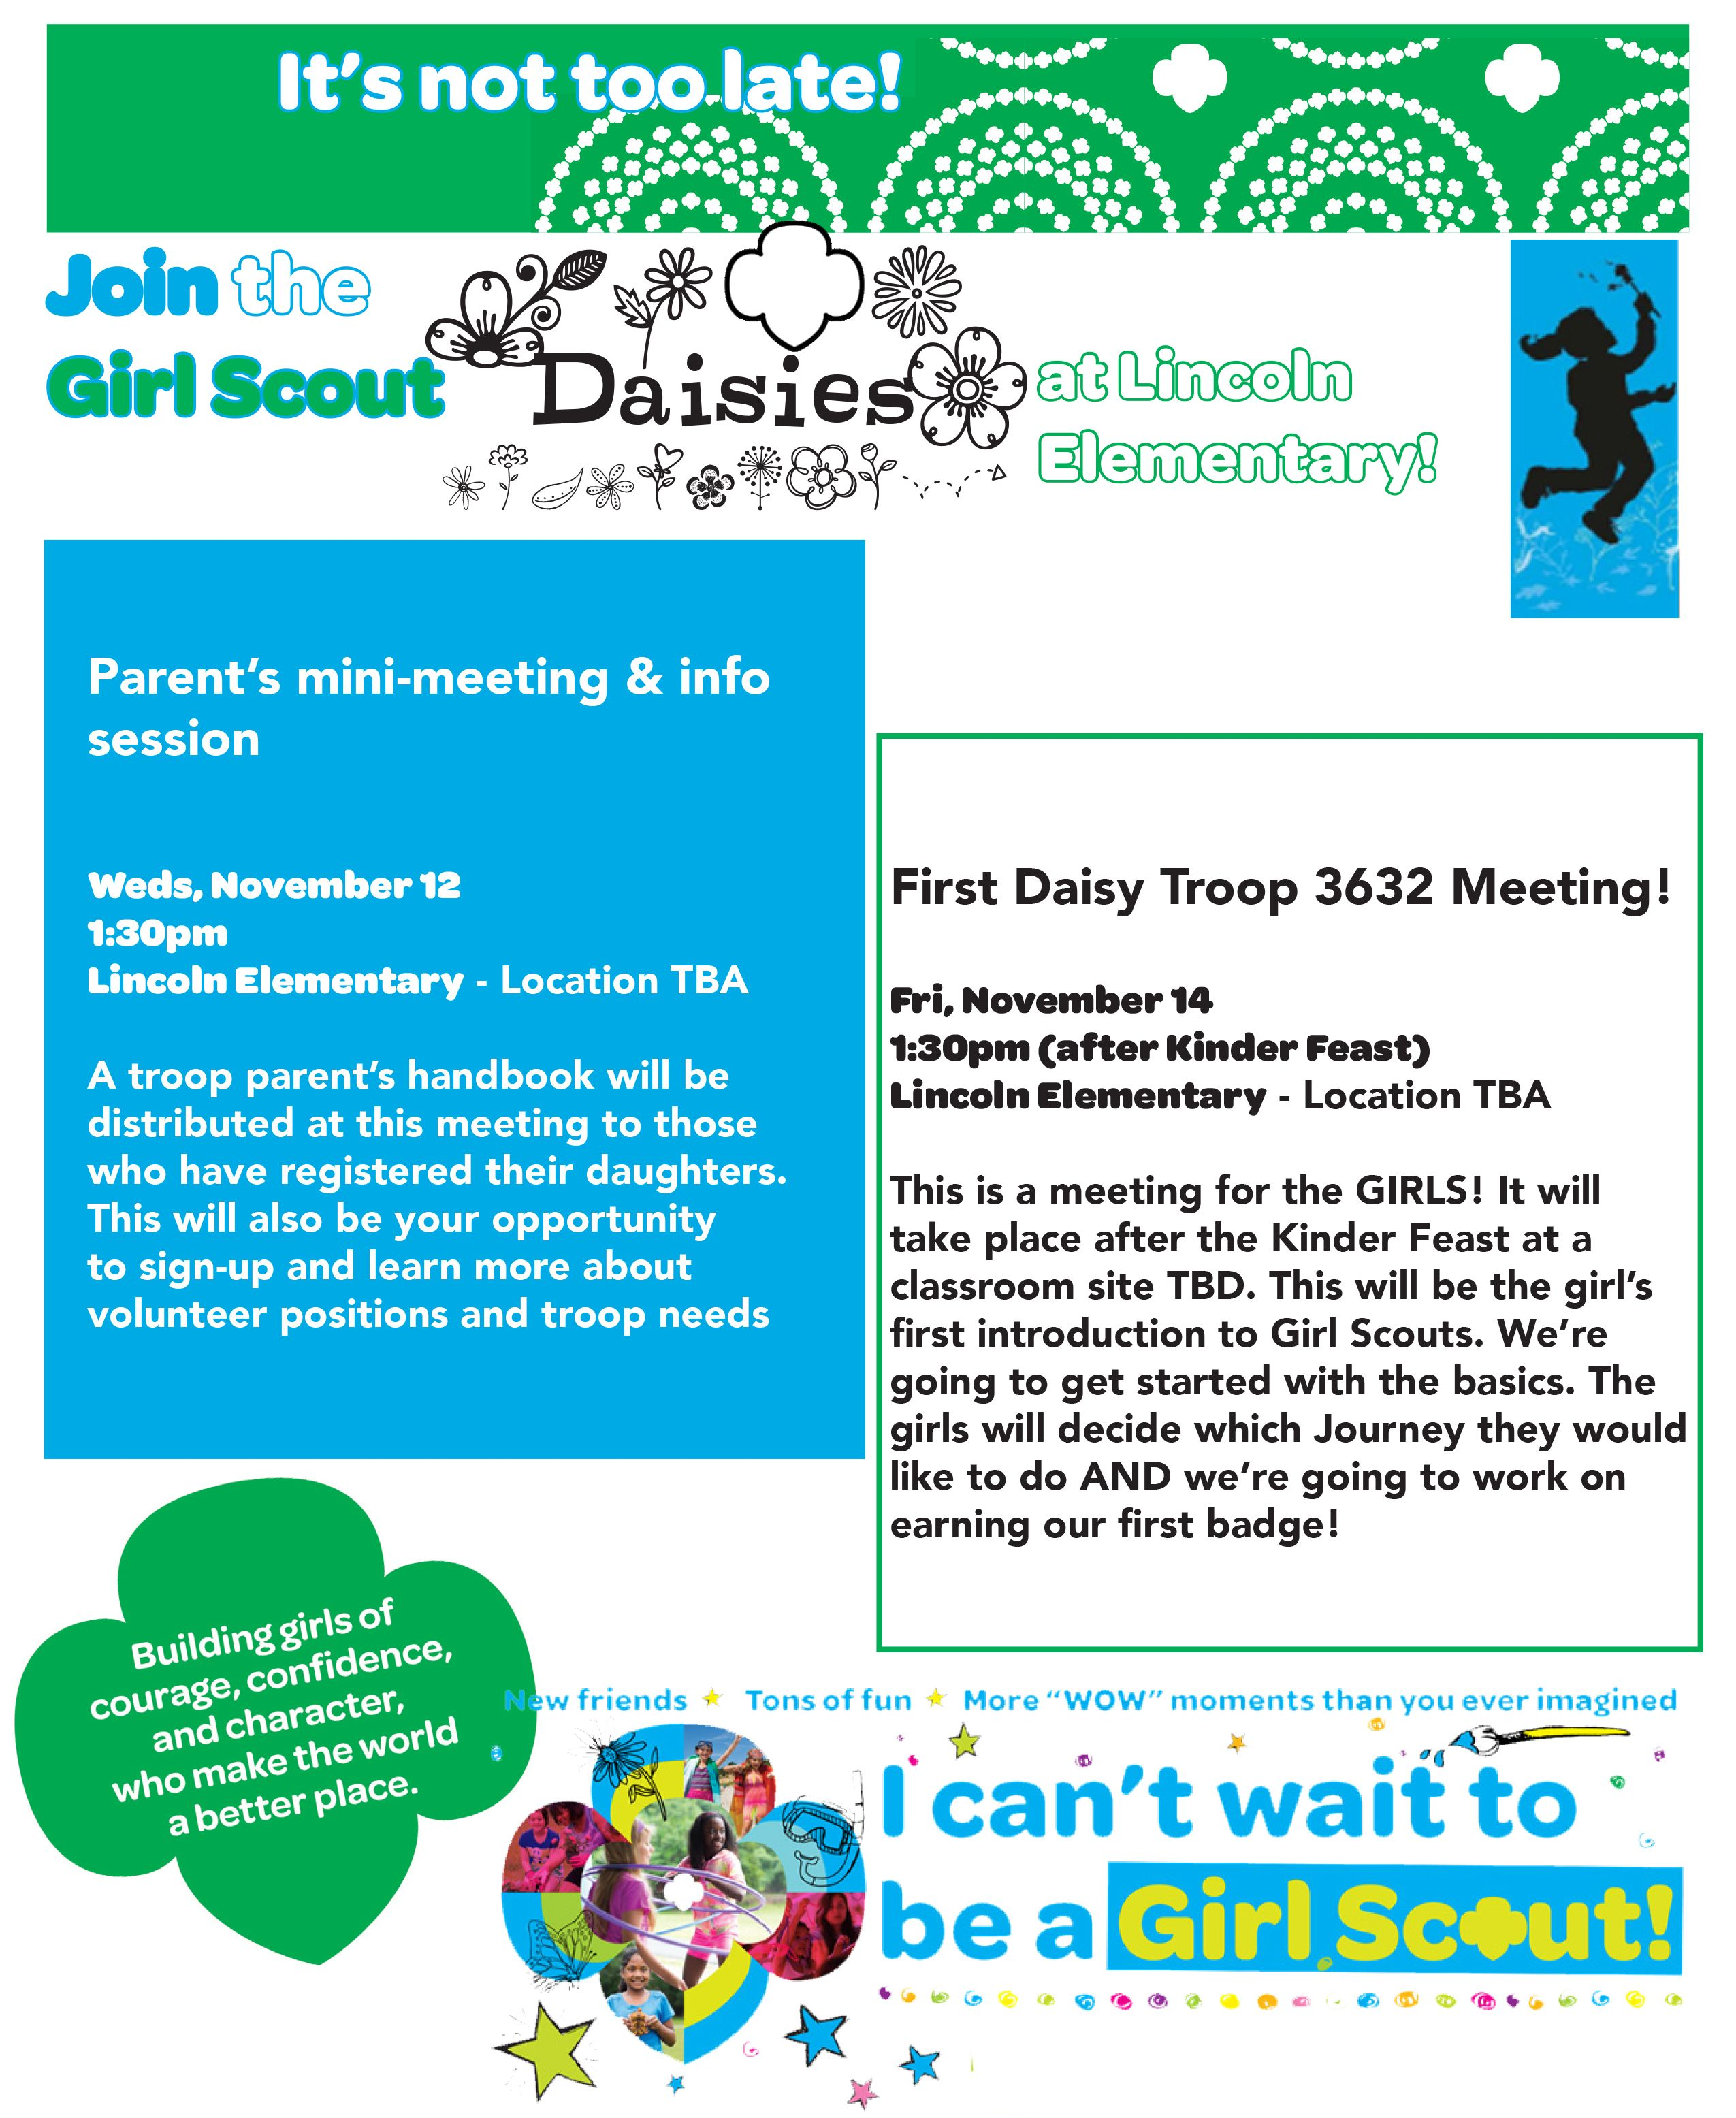 Daisy Girl Scout Recruitment Flyer Designed By Charmaine